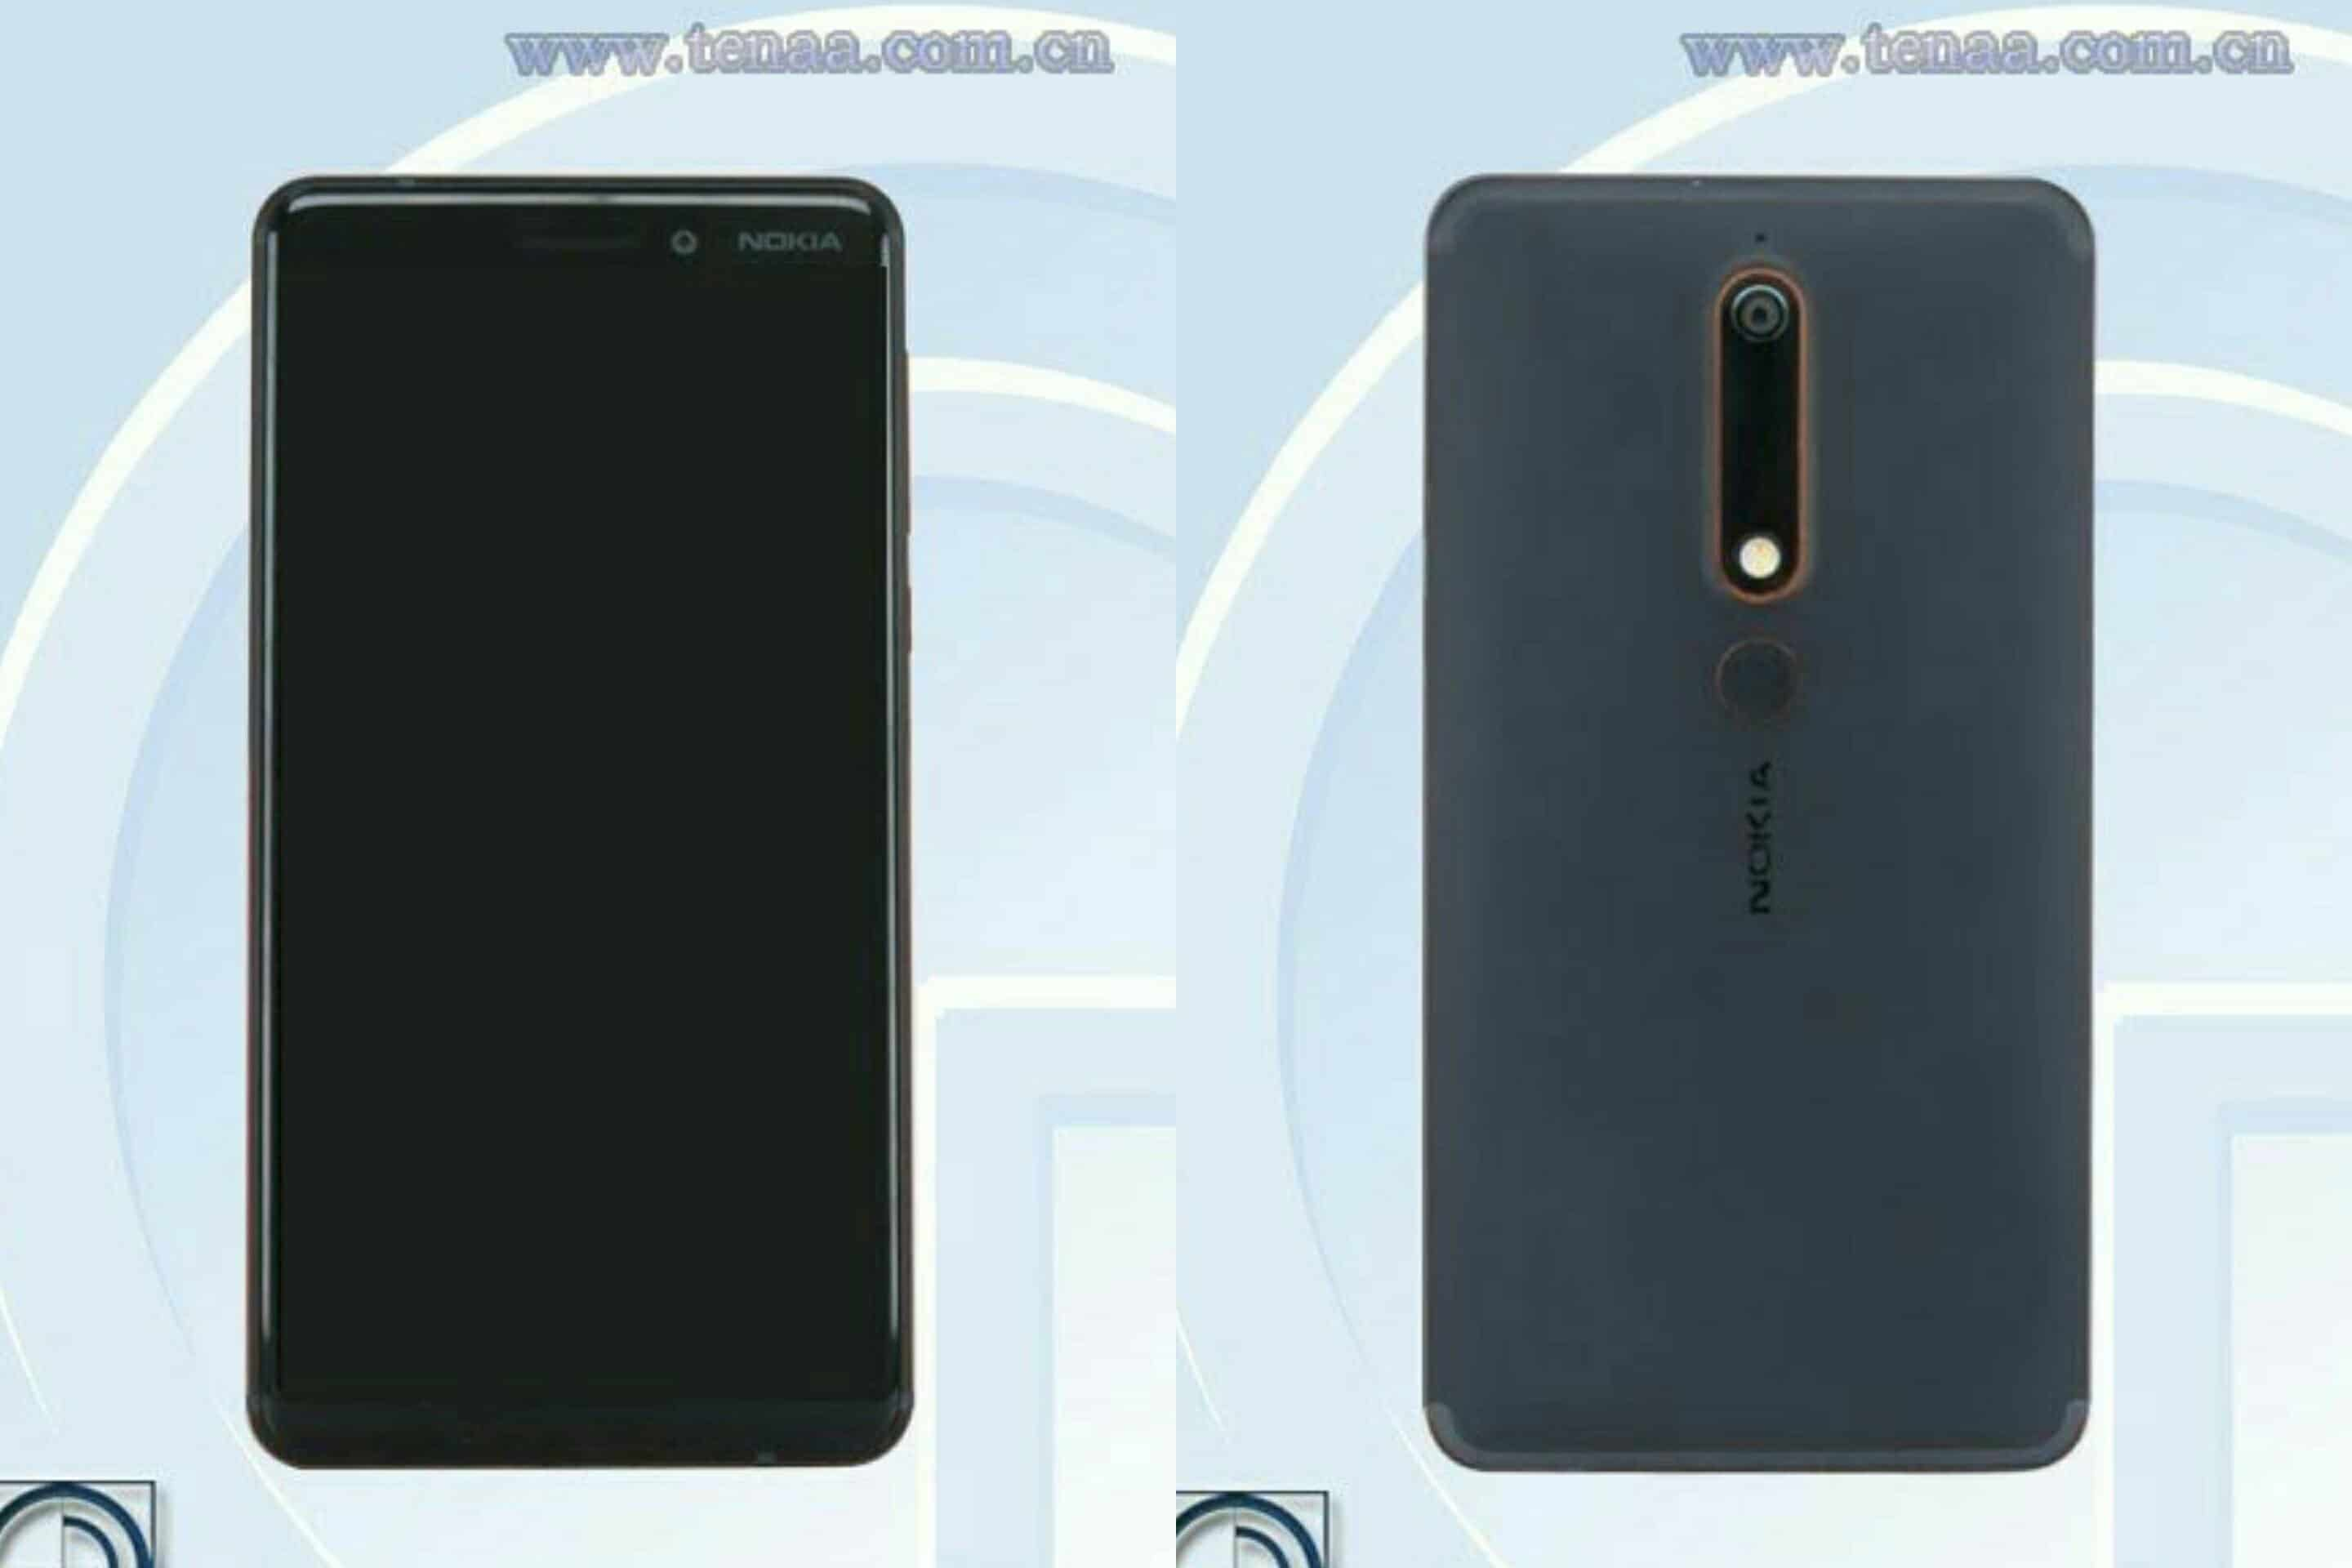 Nokia 9 features in yet another leak, this time without a case